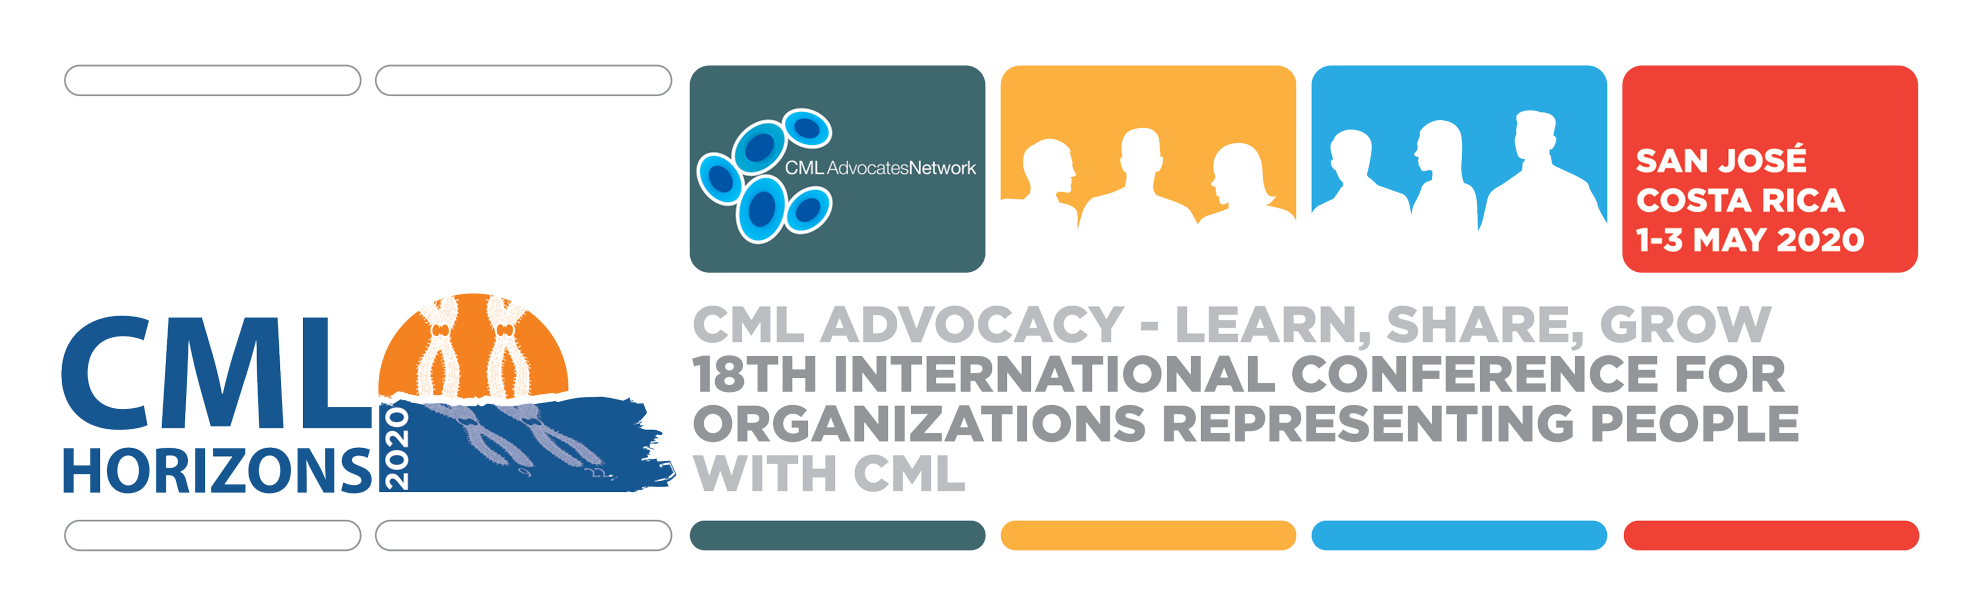 CML Logotip Costa Rica 2020 1